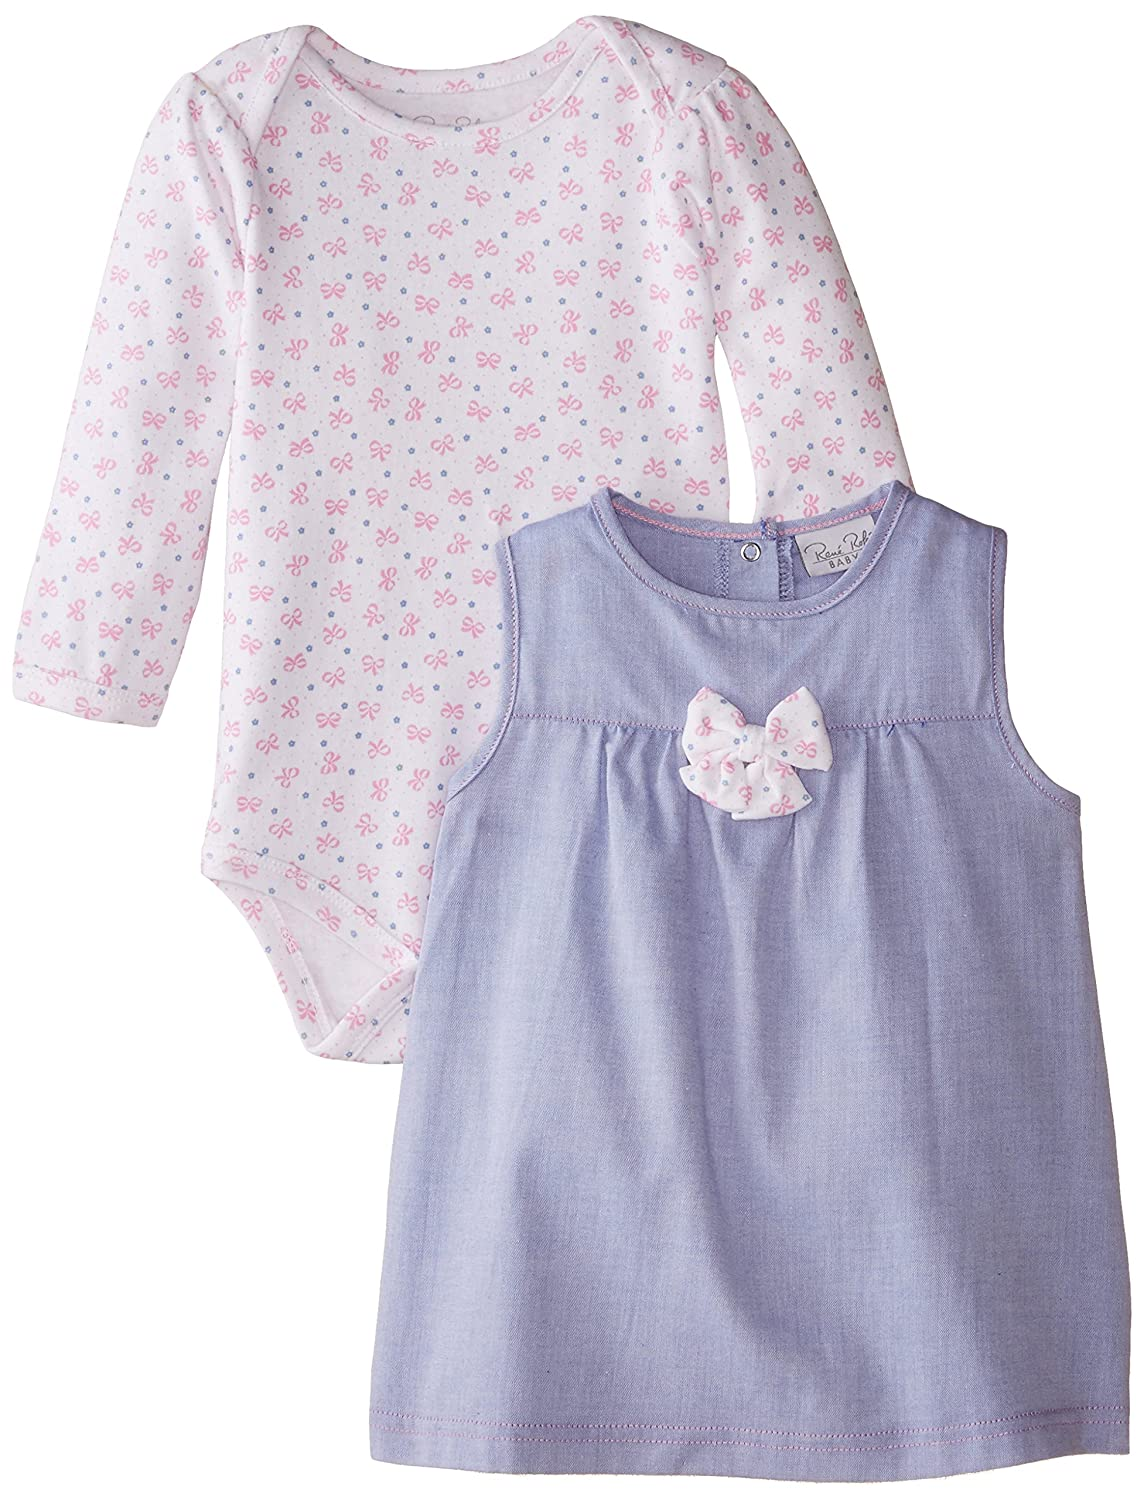 Rene Rofe Baby Baby Girls Infant Ribbons Bows Chambray Jumper and Bodysuit Set